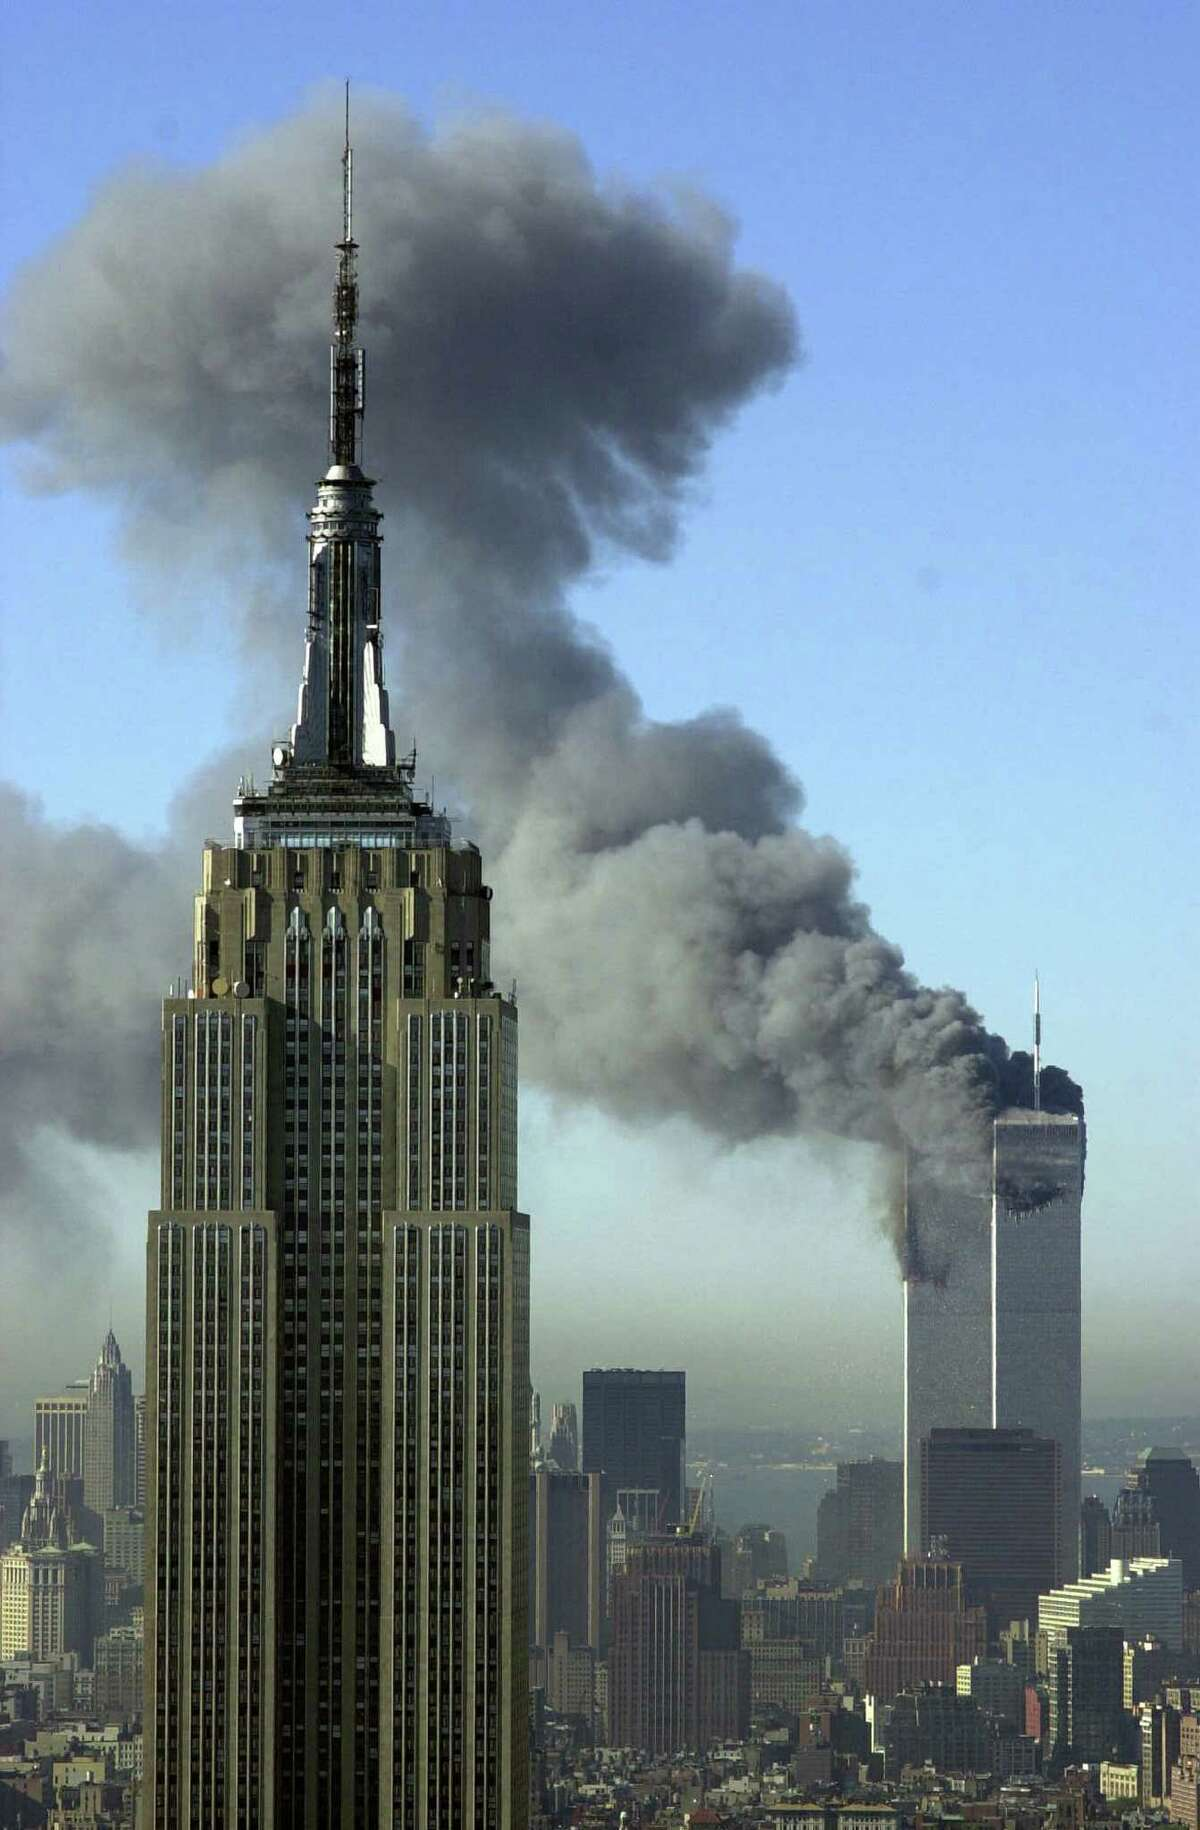 Smoke billows from the World Trade Center buildings on Sept. 11, 2001.